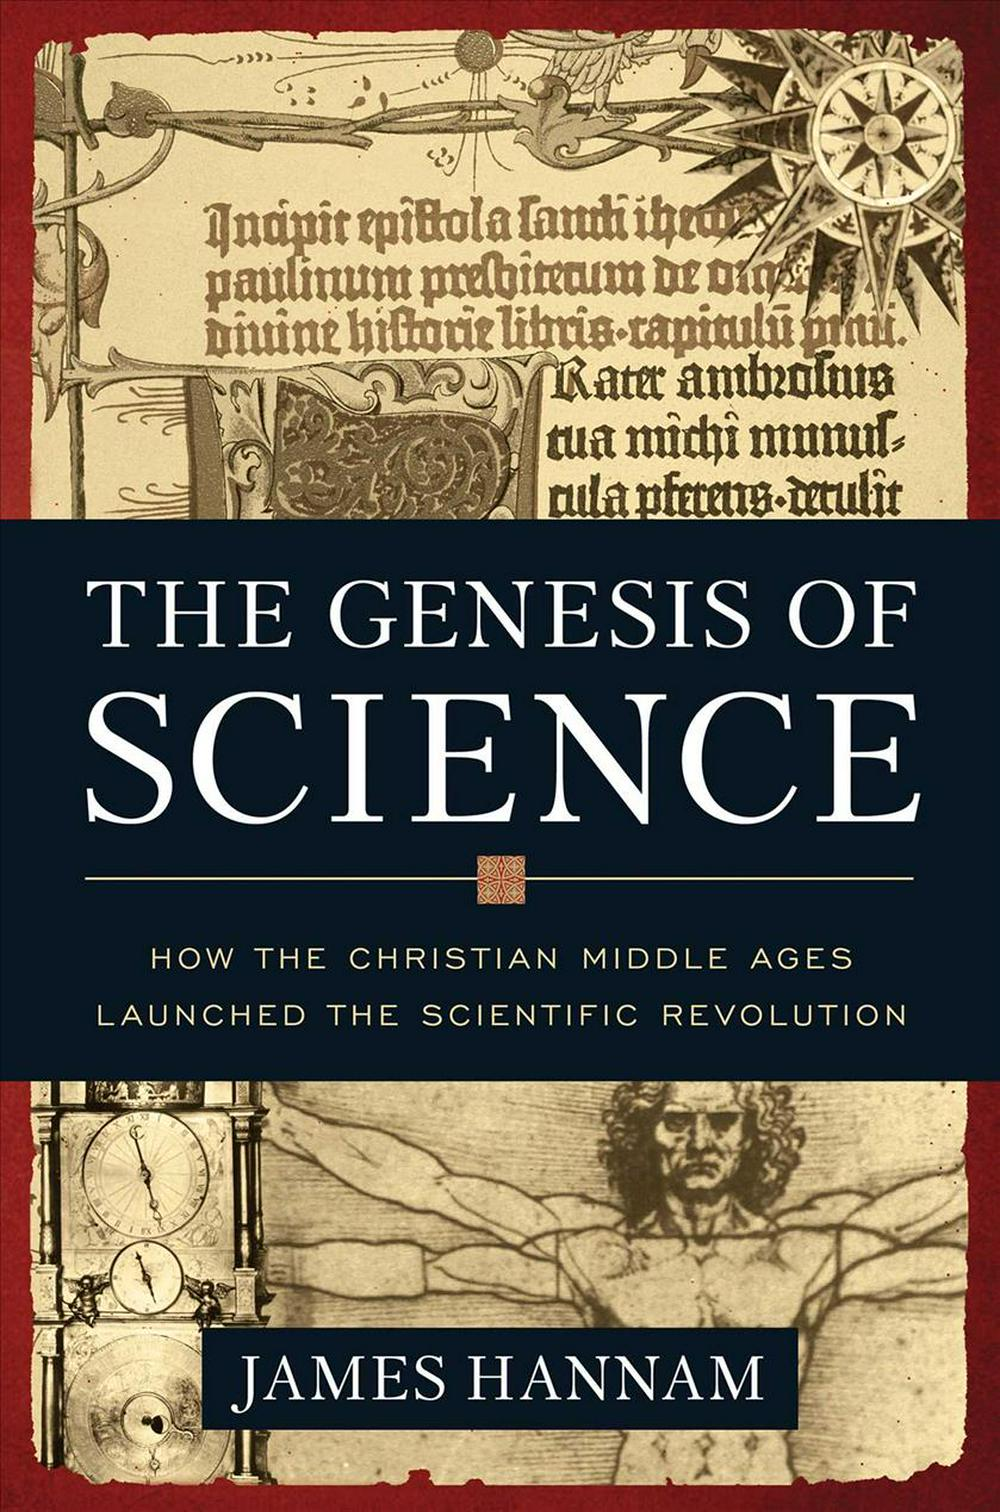 The Genesis of Science by James Hannam, ISBN: 9781596981553